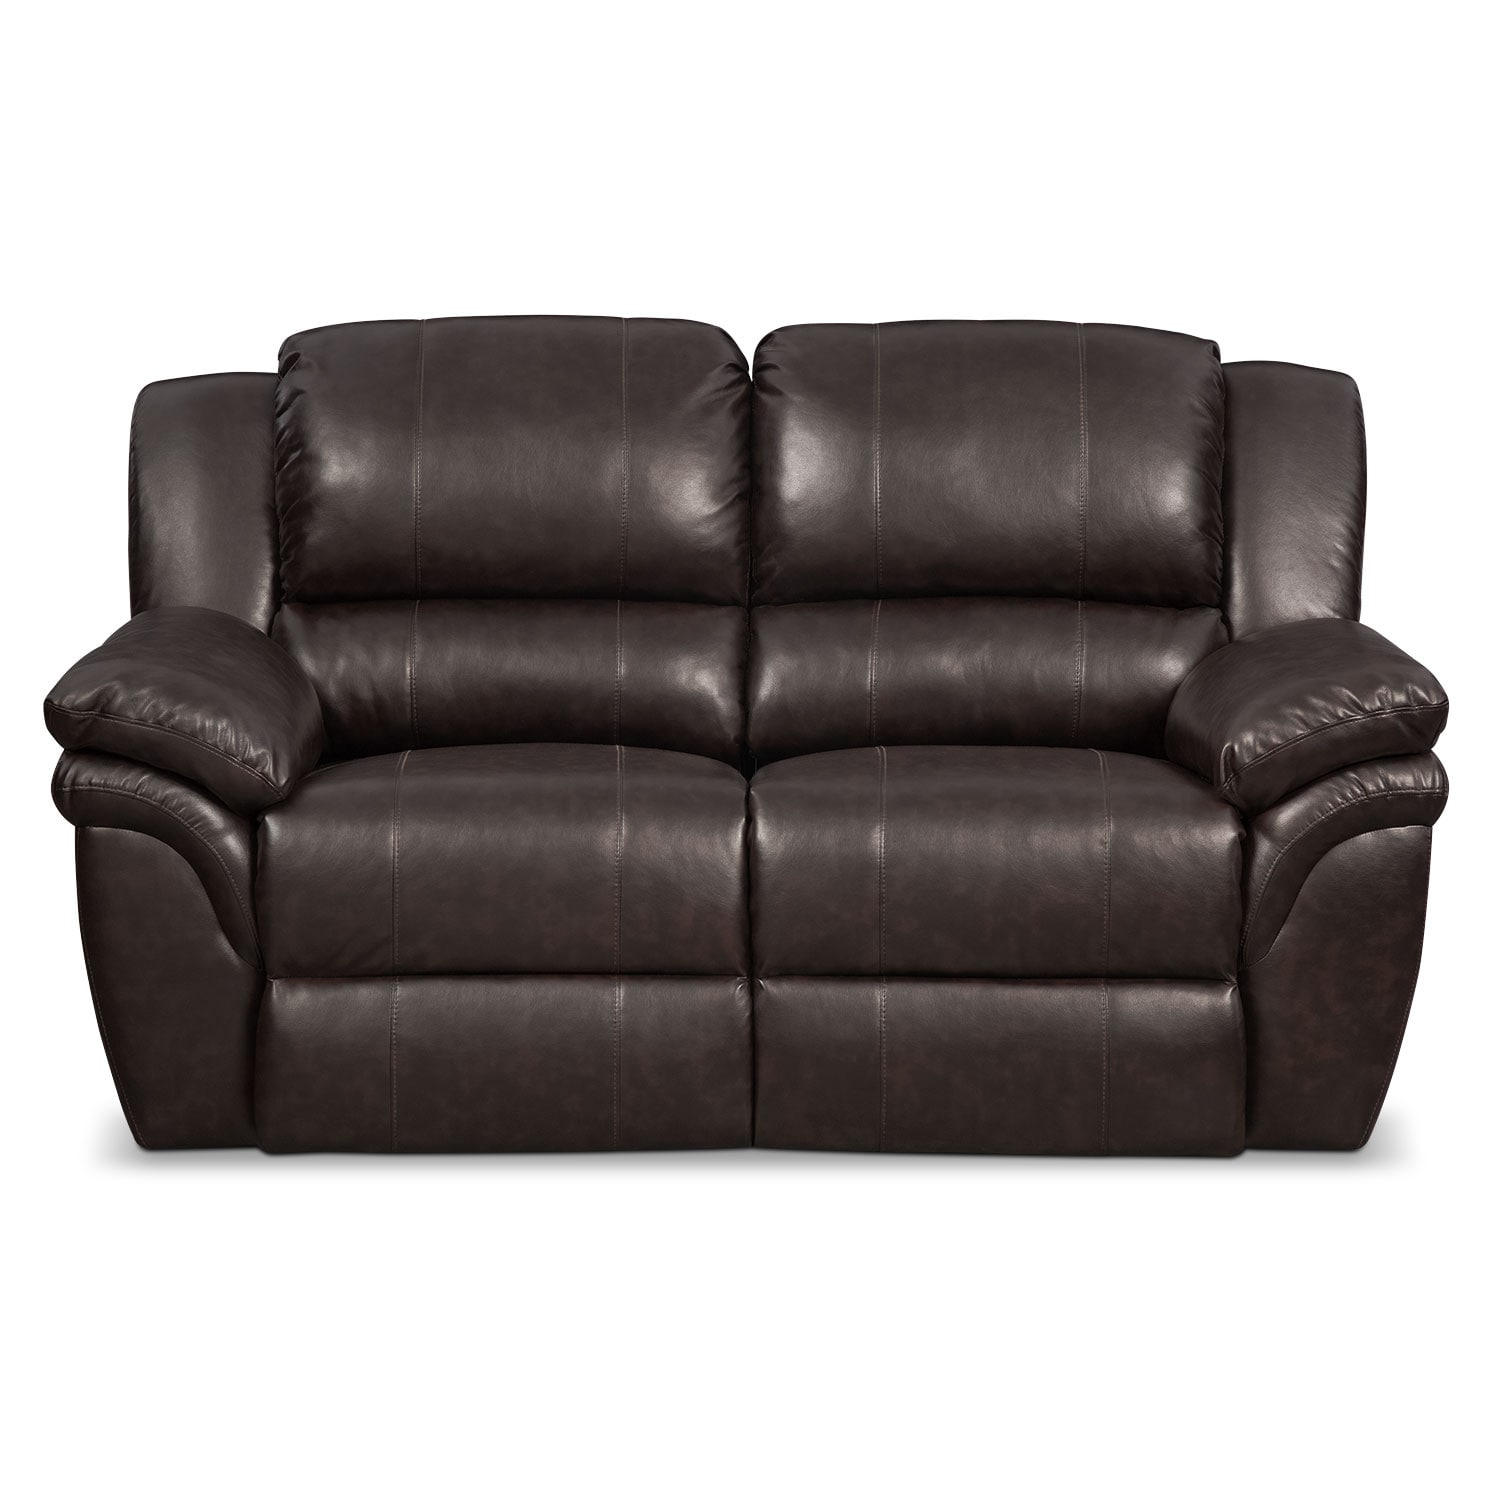 Click to change image.  sc 1 st  Value City Furniture & Aldo Manual Reclining Loveseat - Brown | Value City Furniture islam-shia.org